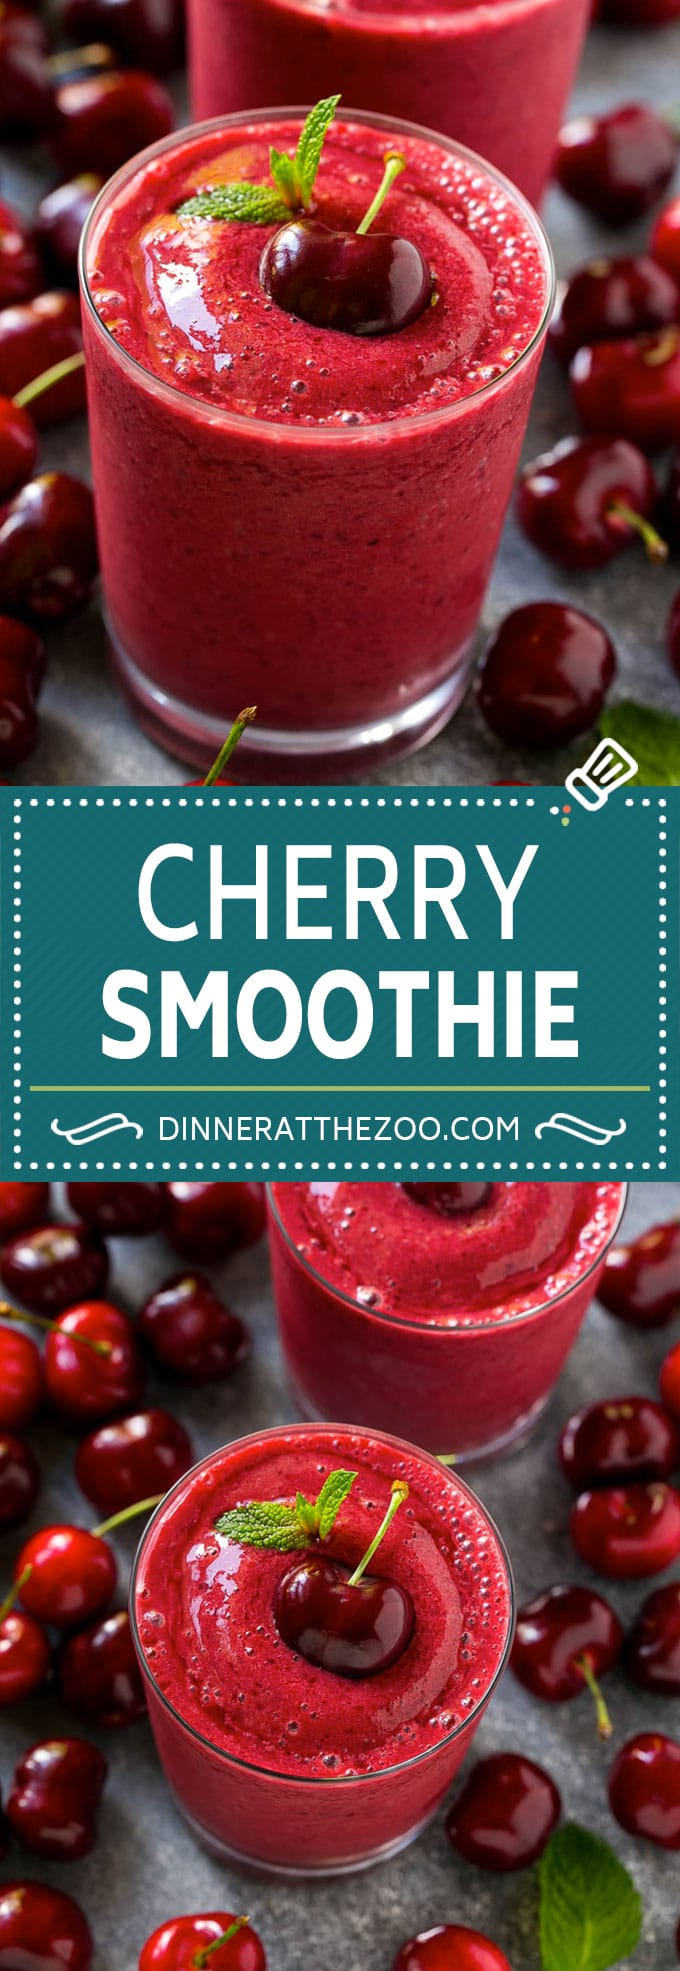 Cherry Smoothie Recipe | Healthy Smoothie | Easy Smoothie #cherry #smoothie #drink #dinneratthezoo